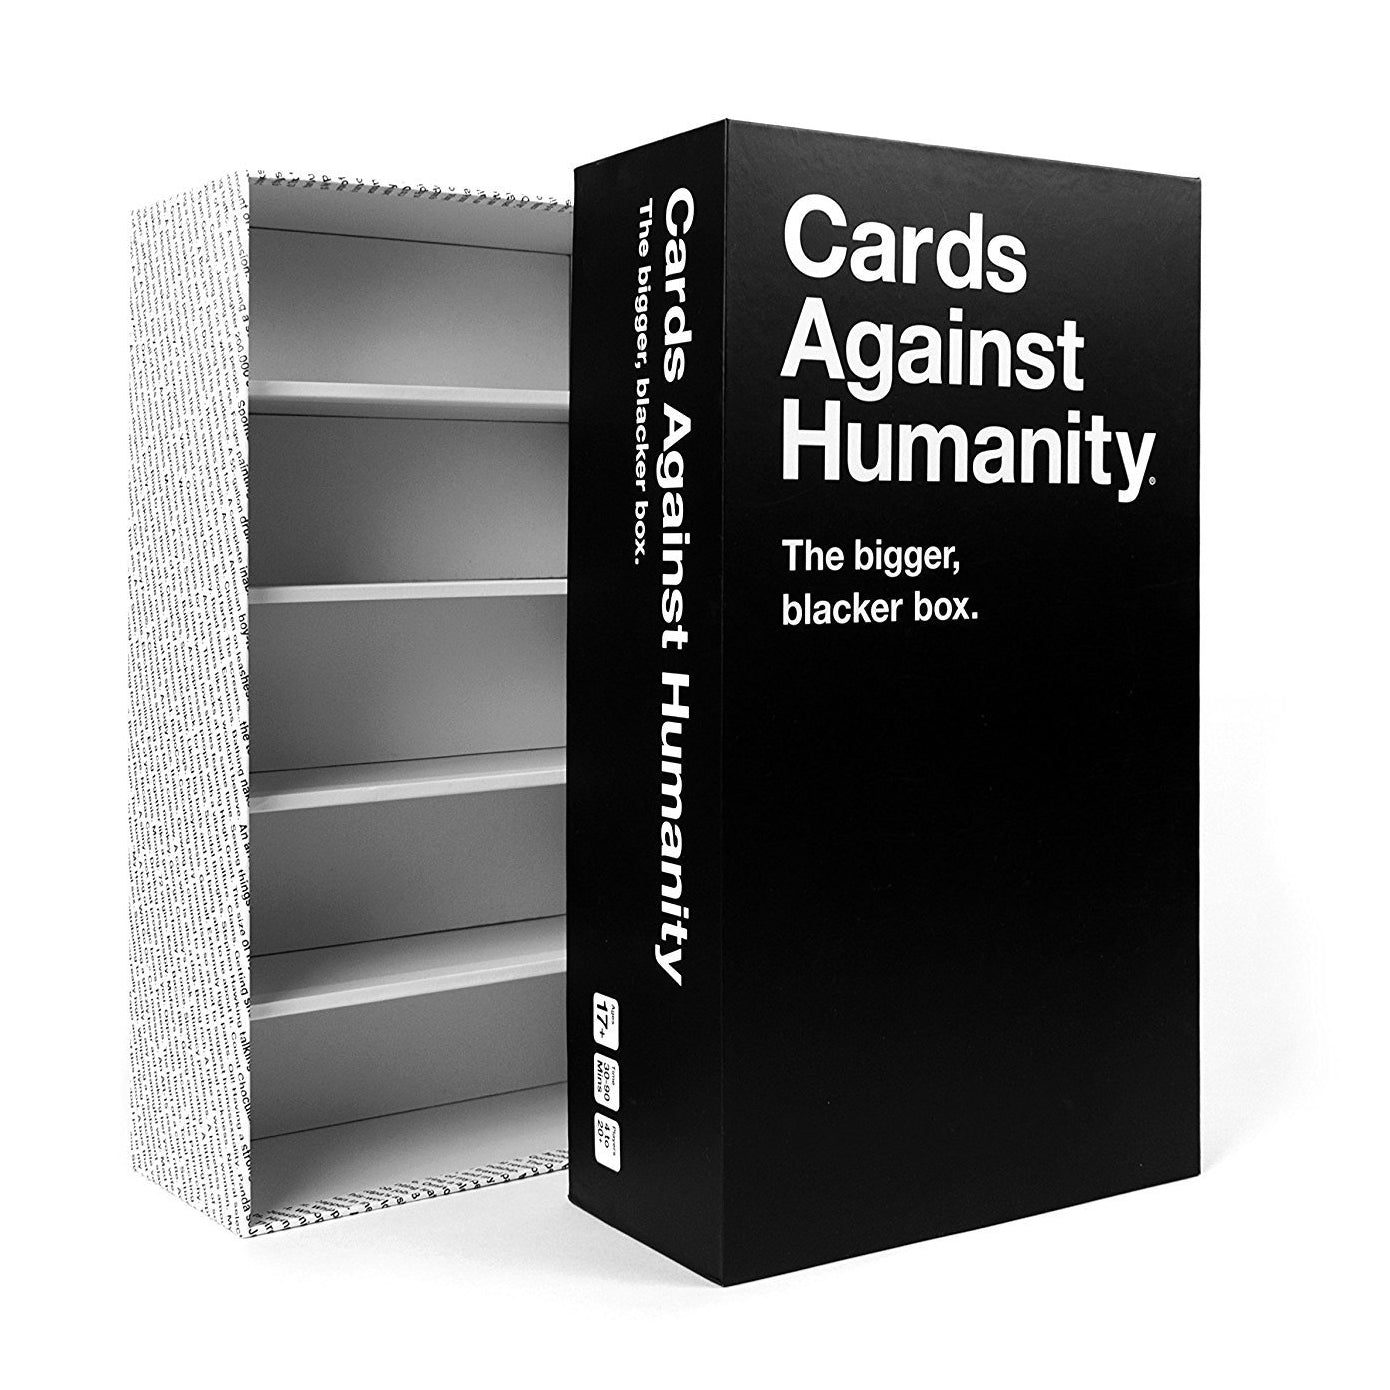 Cards Against Humanity- Bigger, Blacker Box